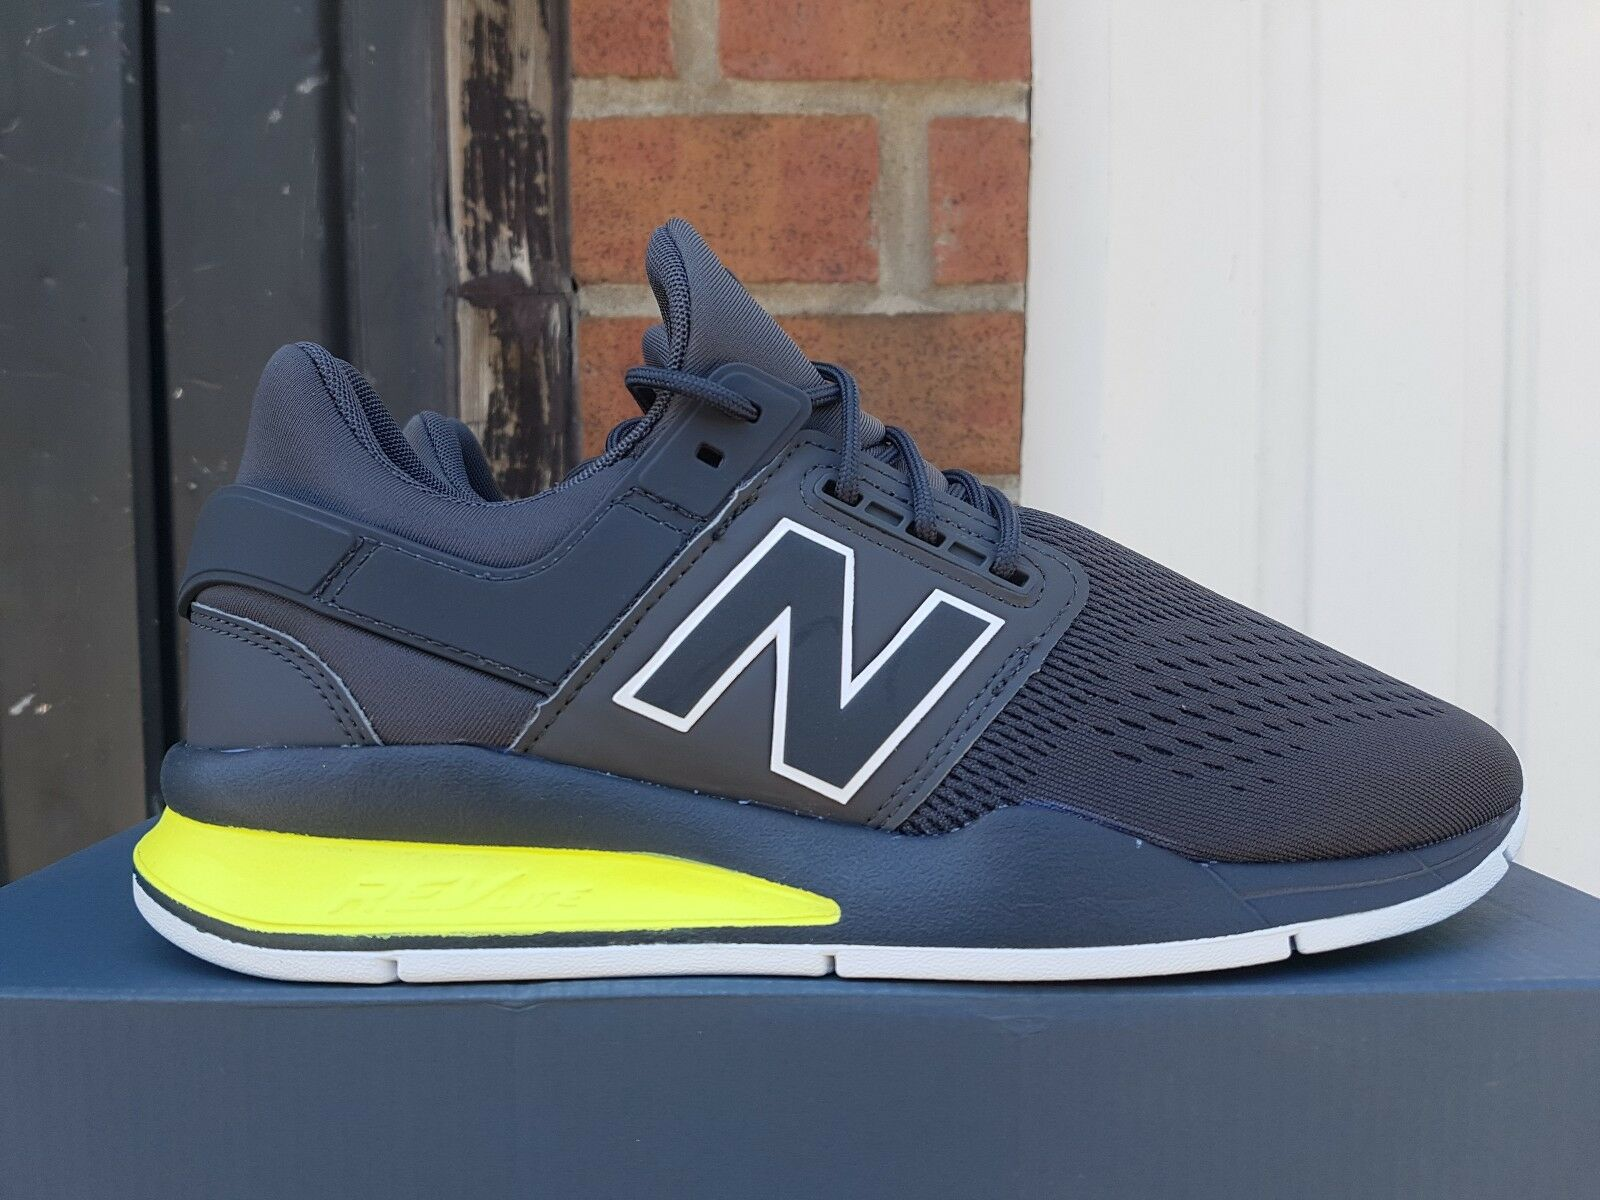 NEW IN THE BOX NEW BALANCE MS247TG GREY LIMITED EDITION FOR MEN